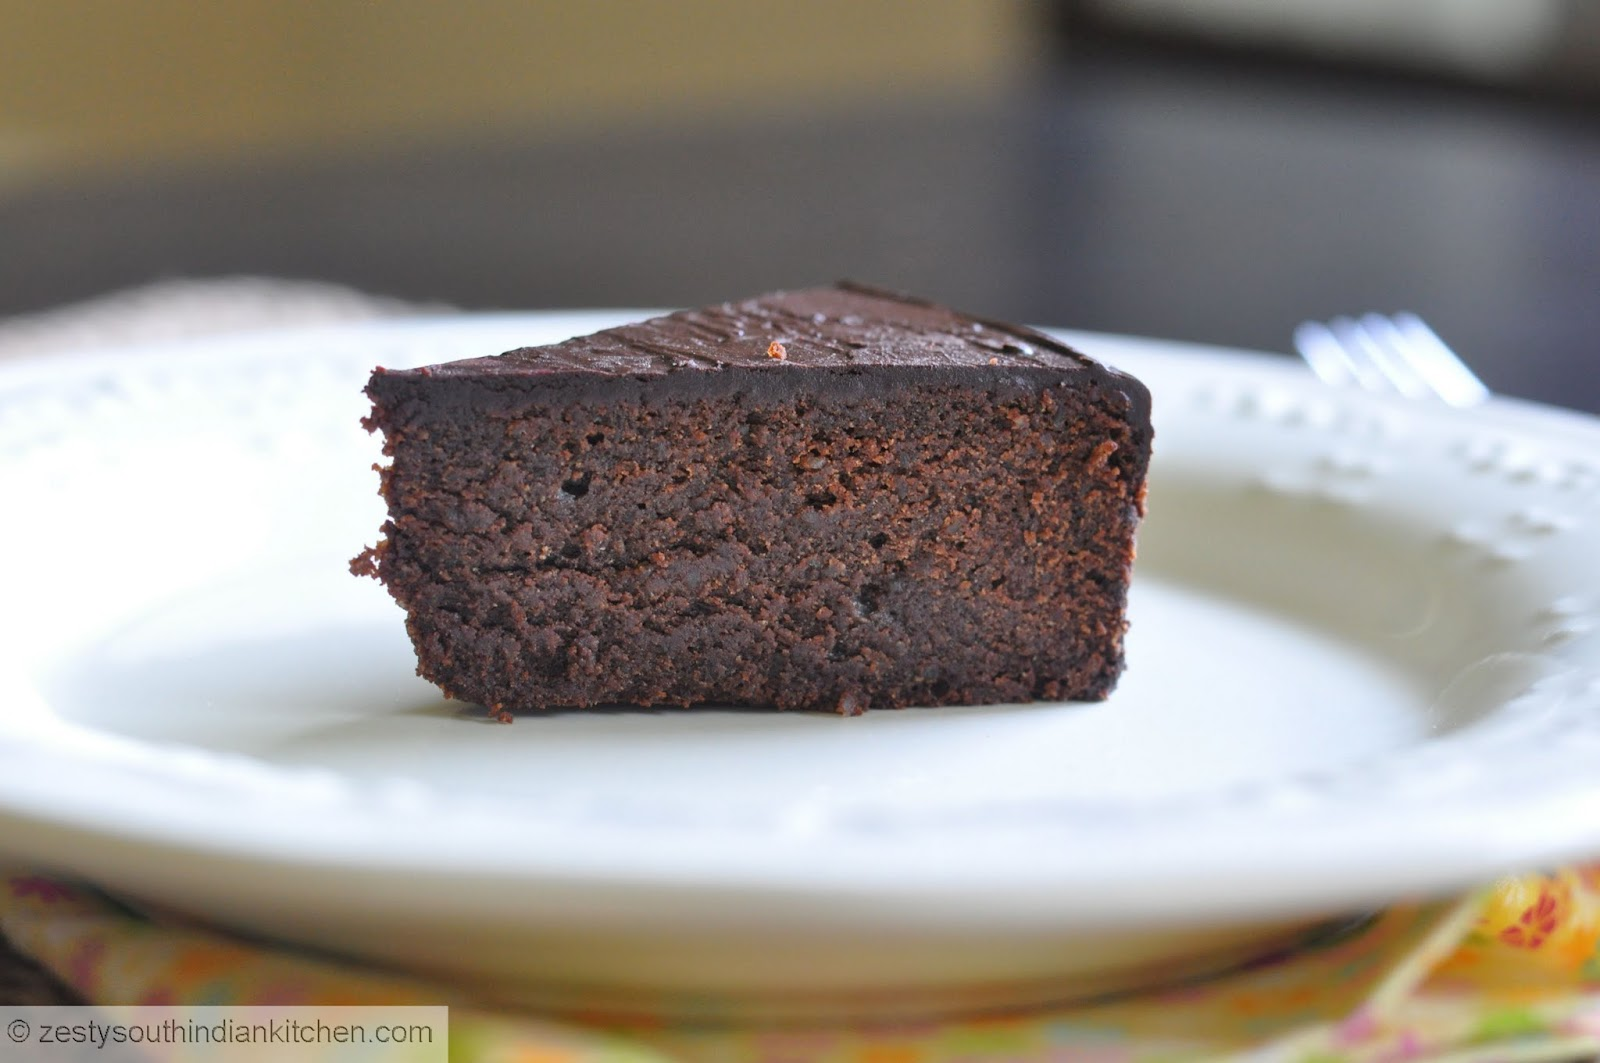 ... Chocolate Almond Cake For Baking Partners - Zesty South Indian Kitchen